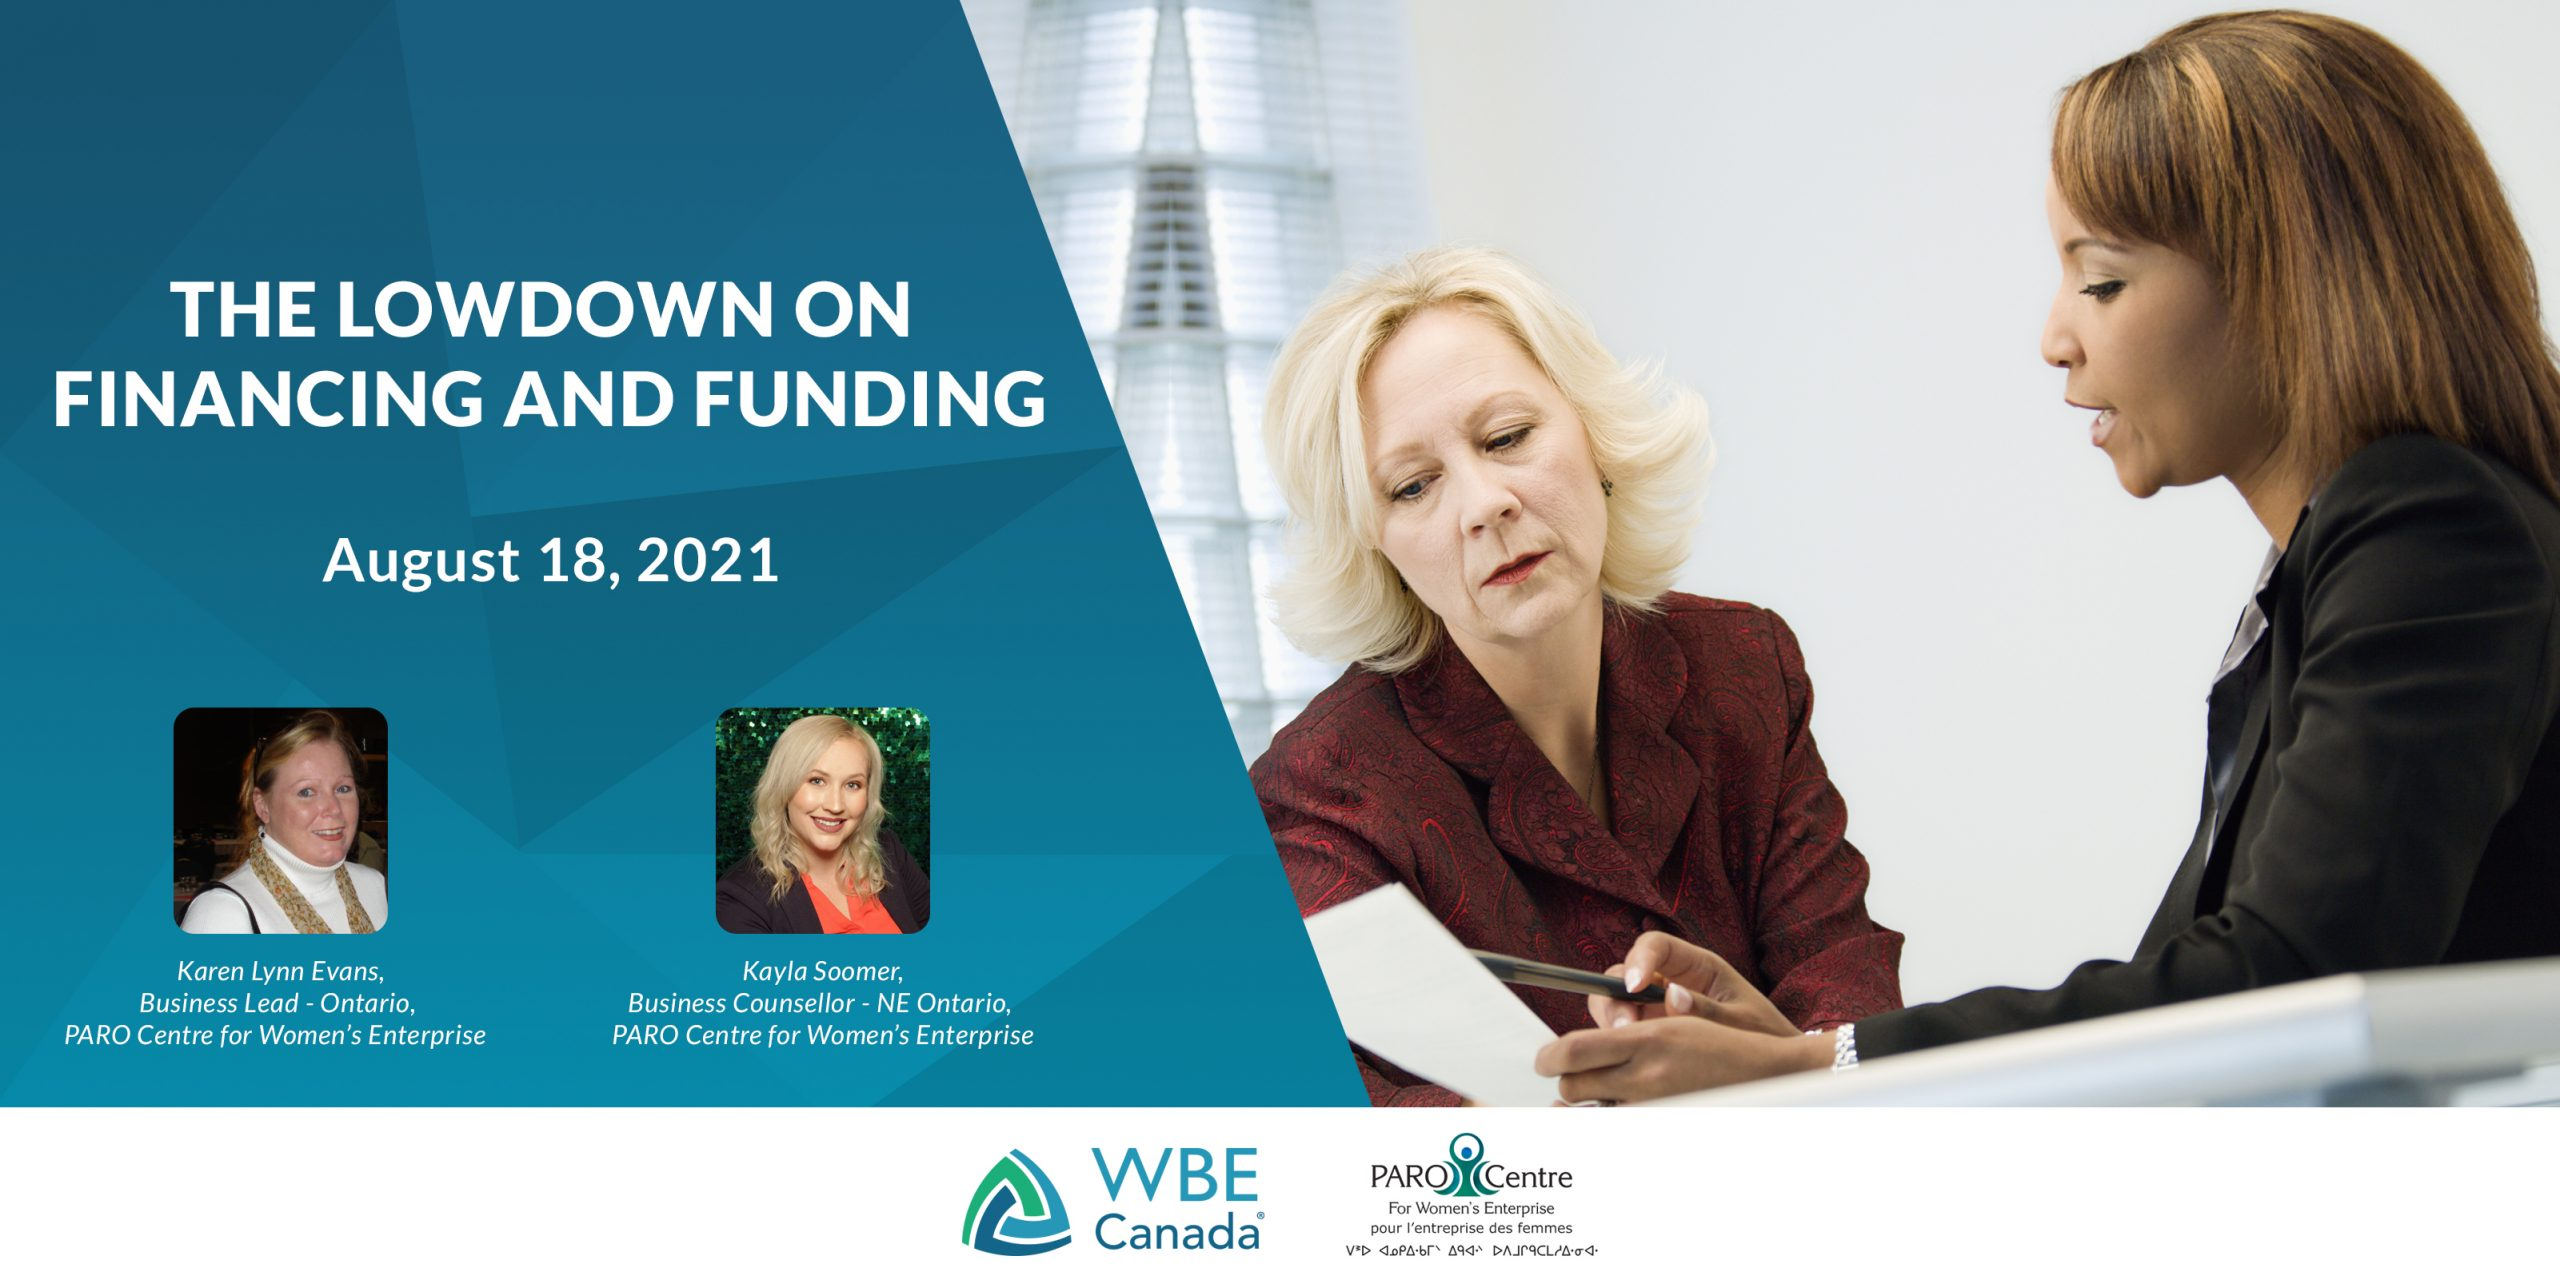 The lowdown on finance and funding